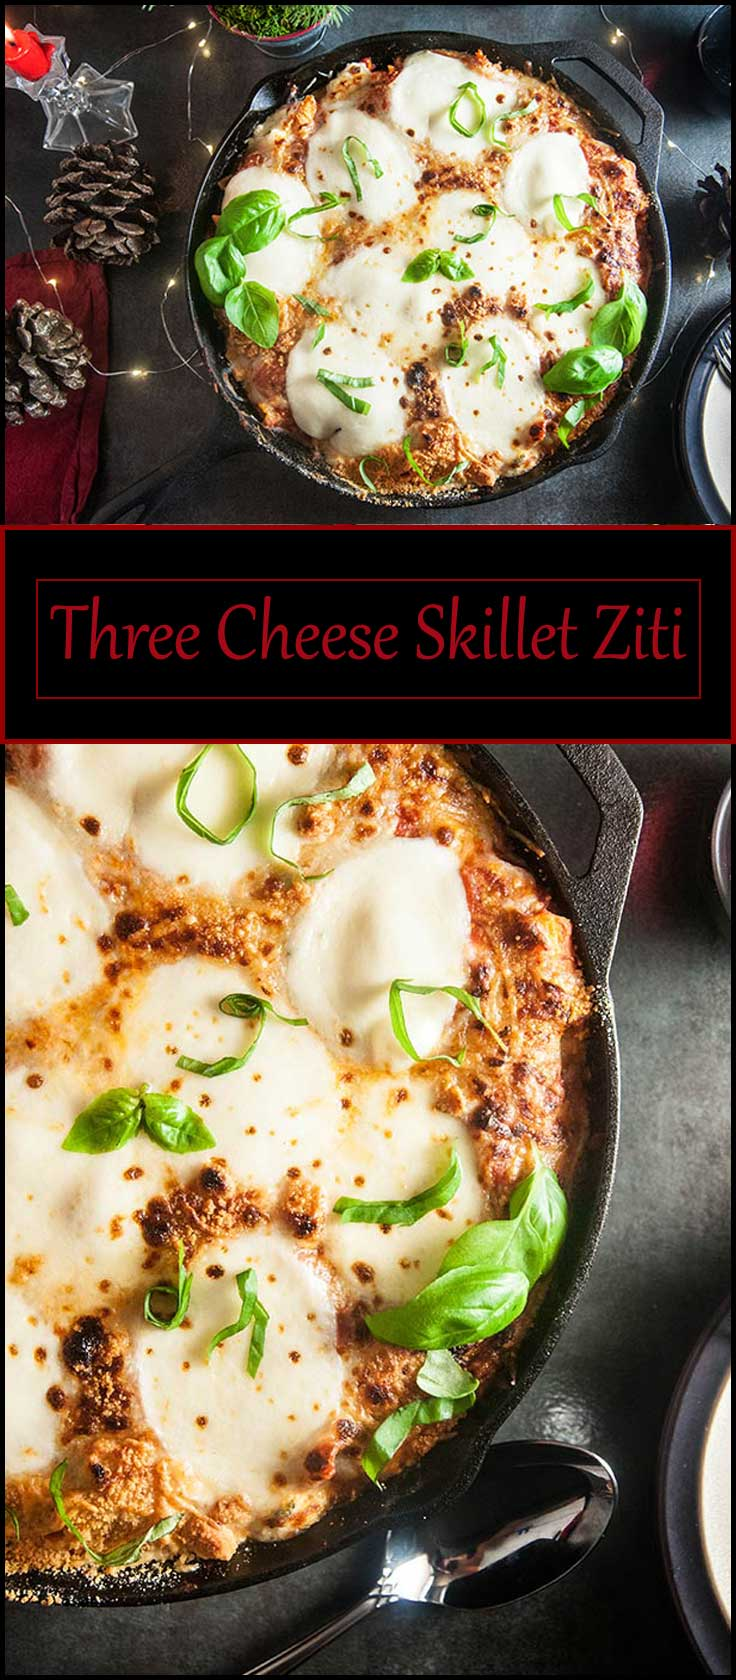 Three Cheese Skillet Ziti from www.seasonedsprinkles.com